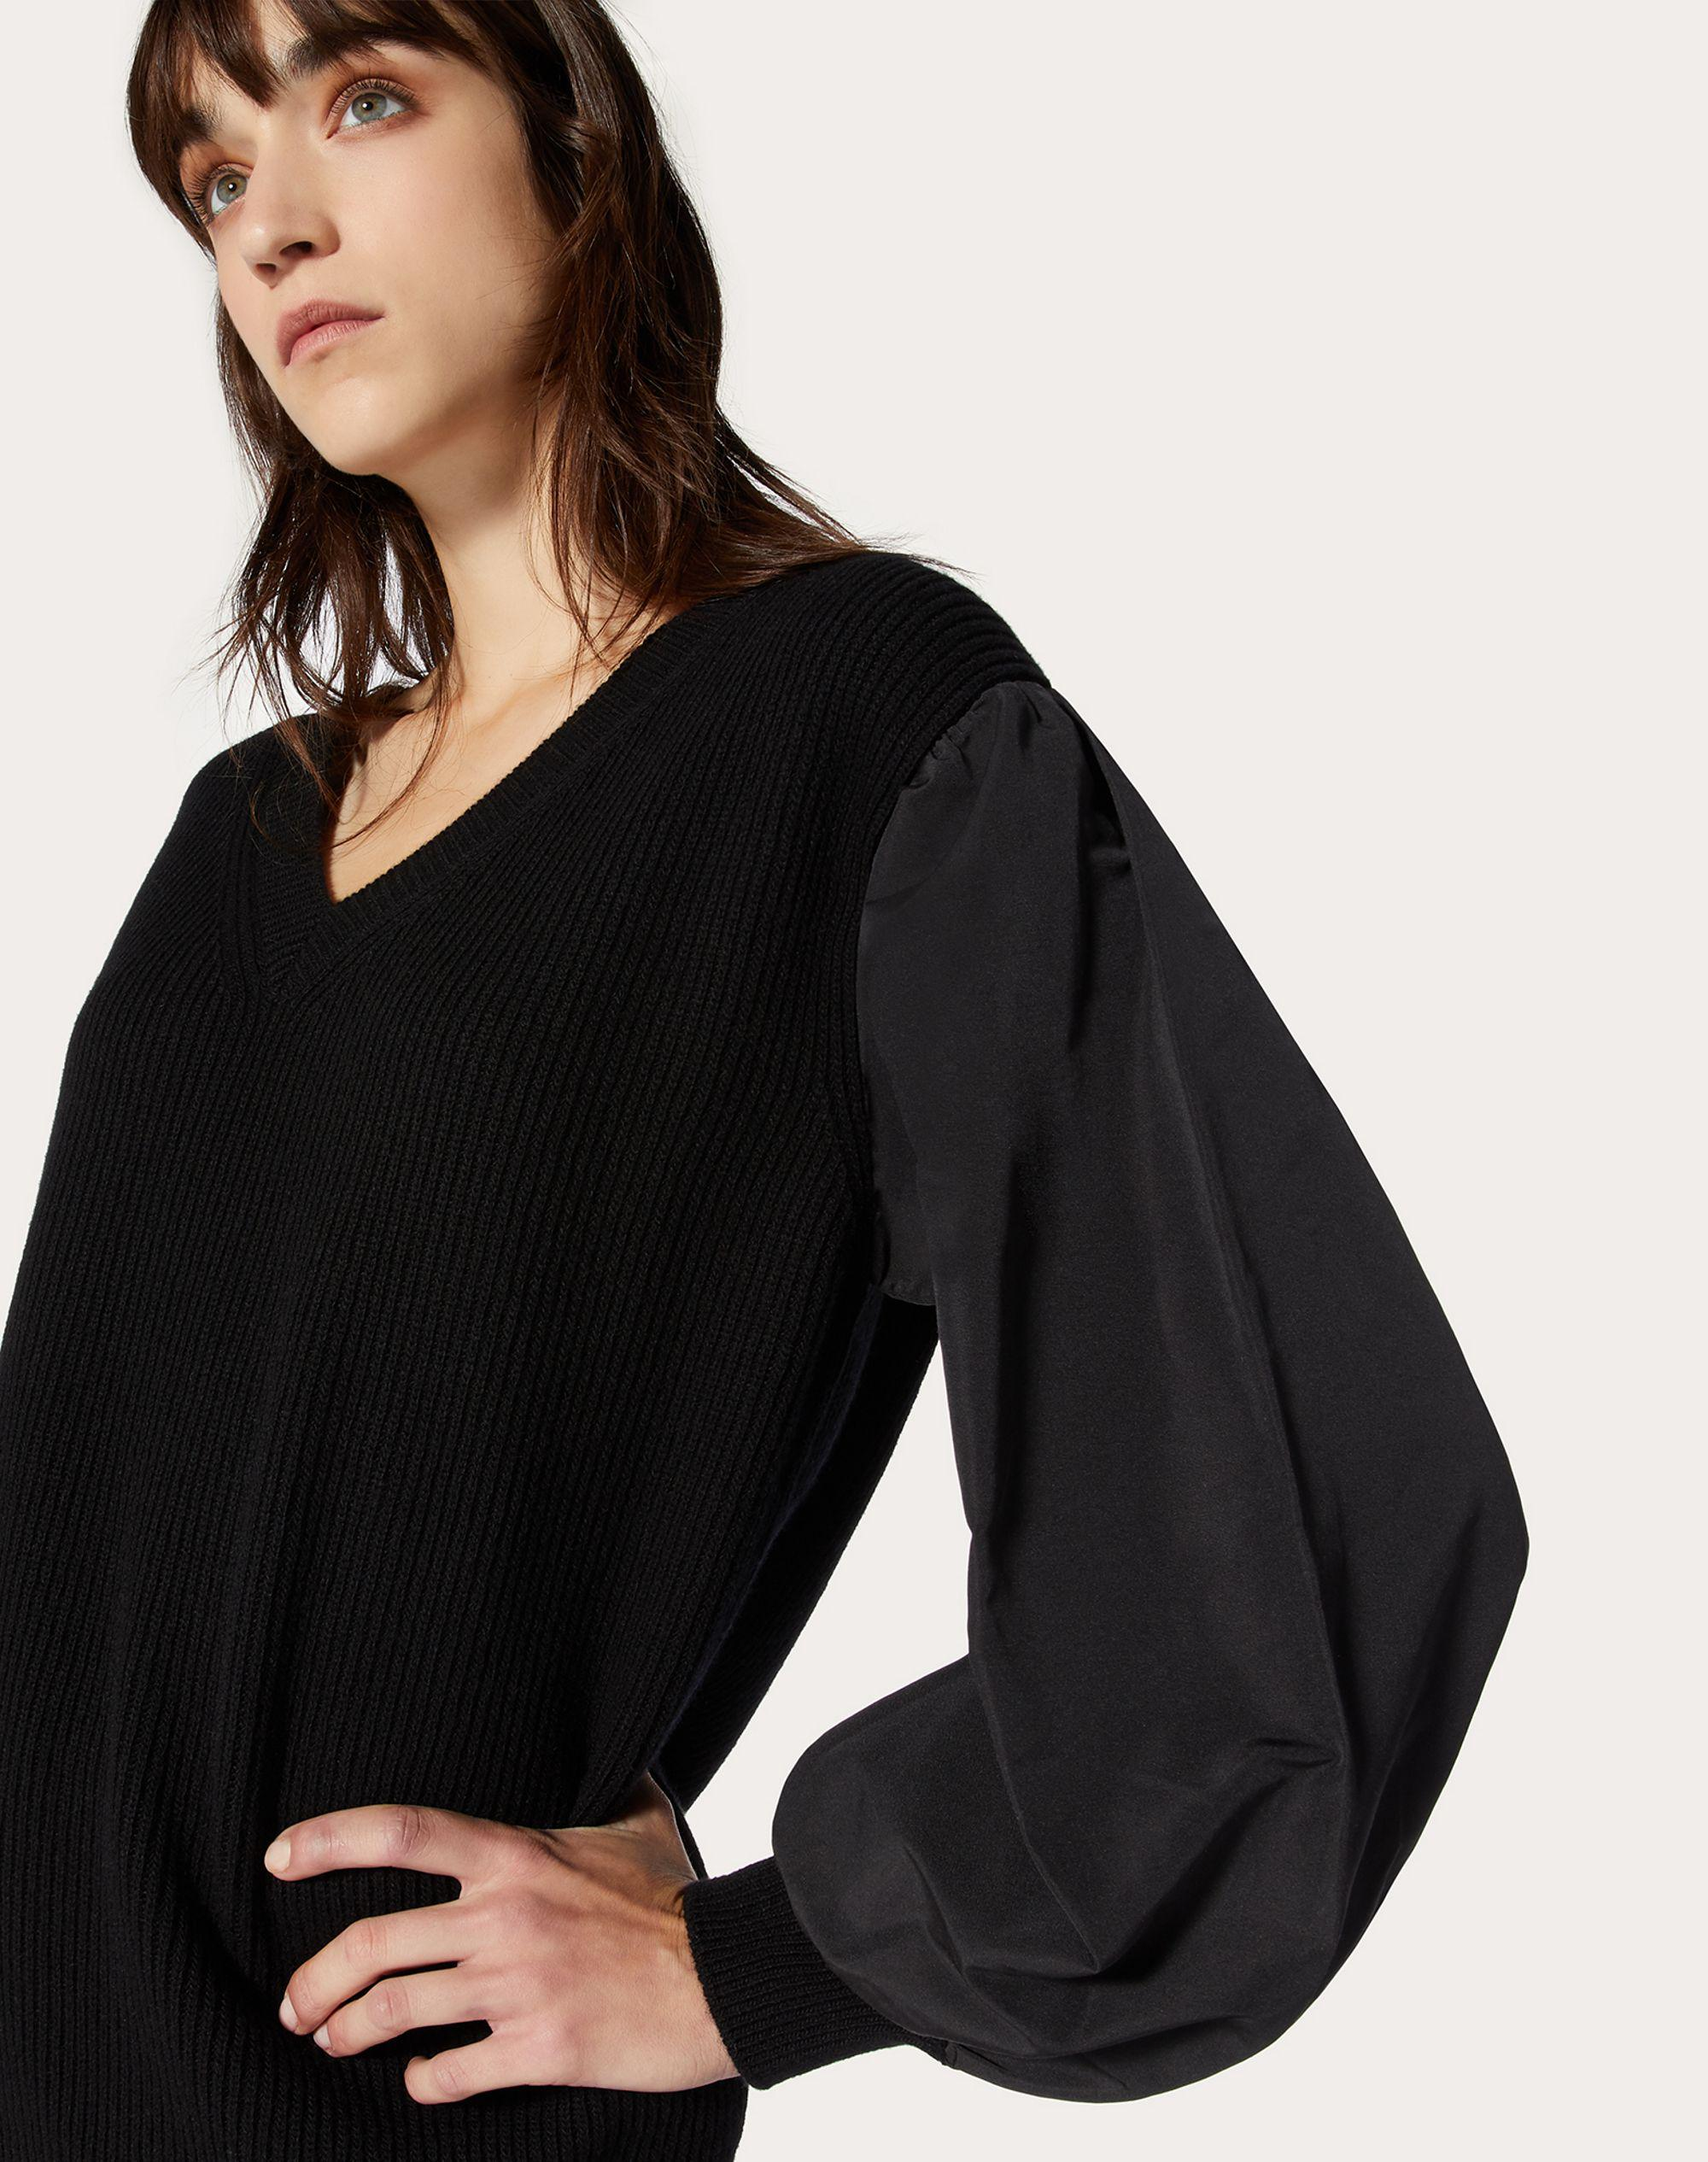 Cashmere Wool and Micro-Faille Sweater 3